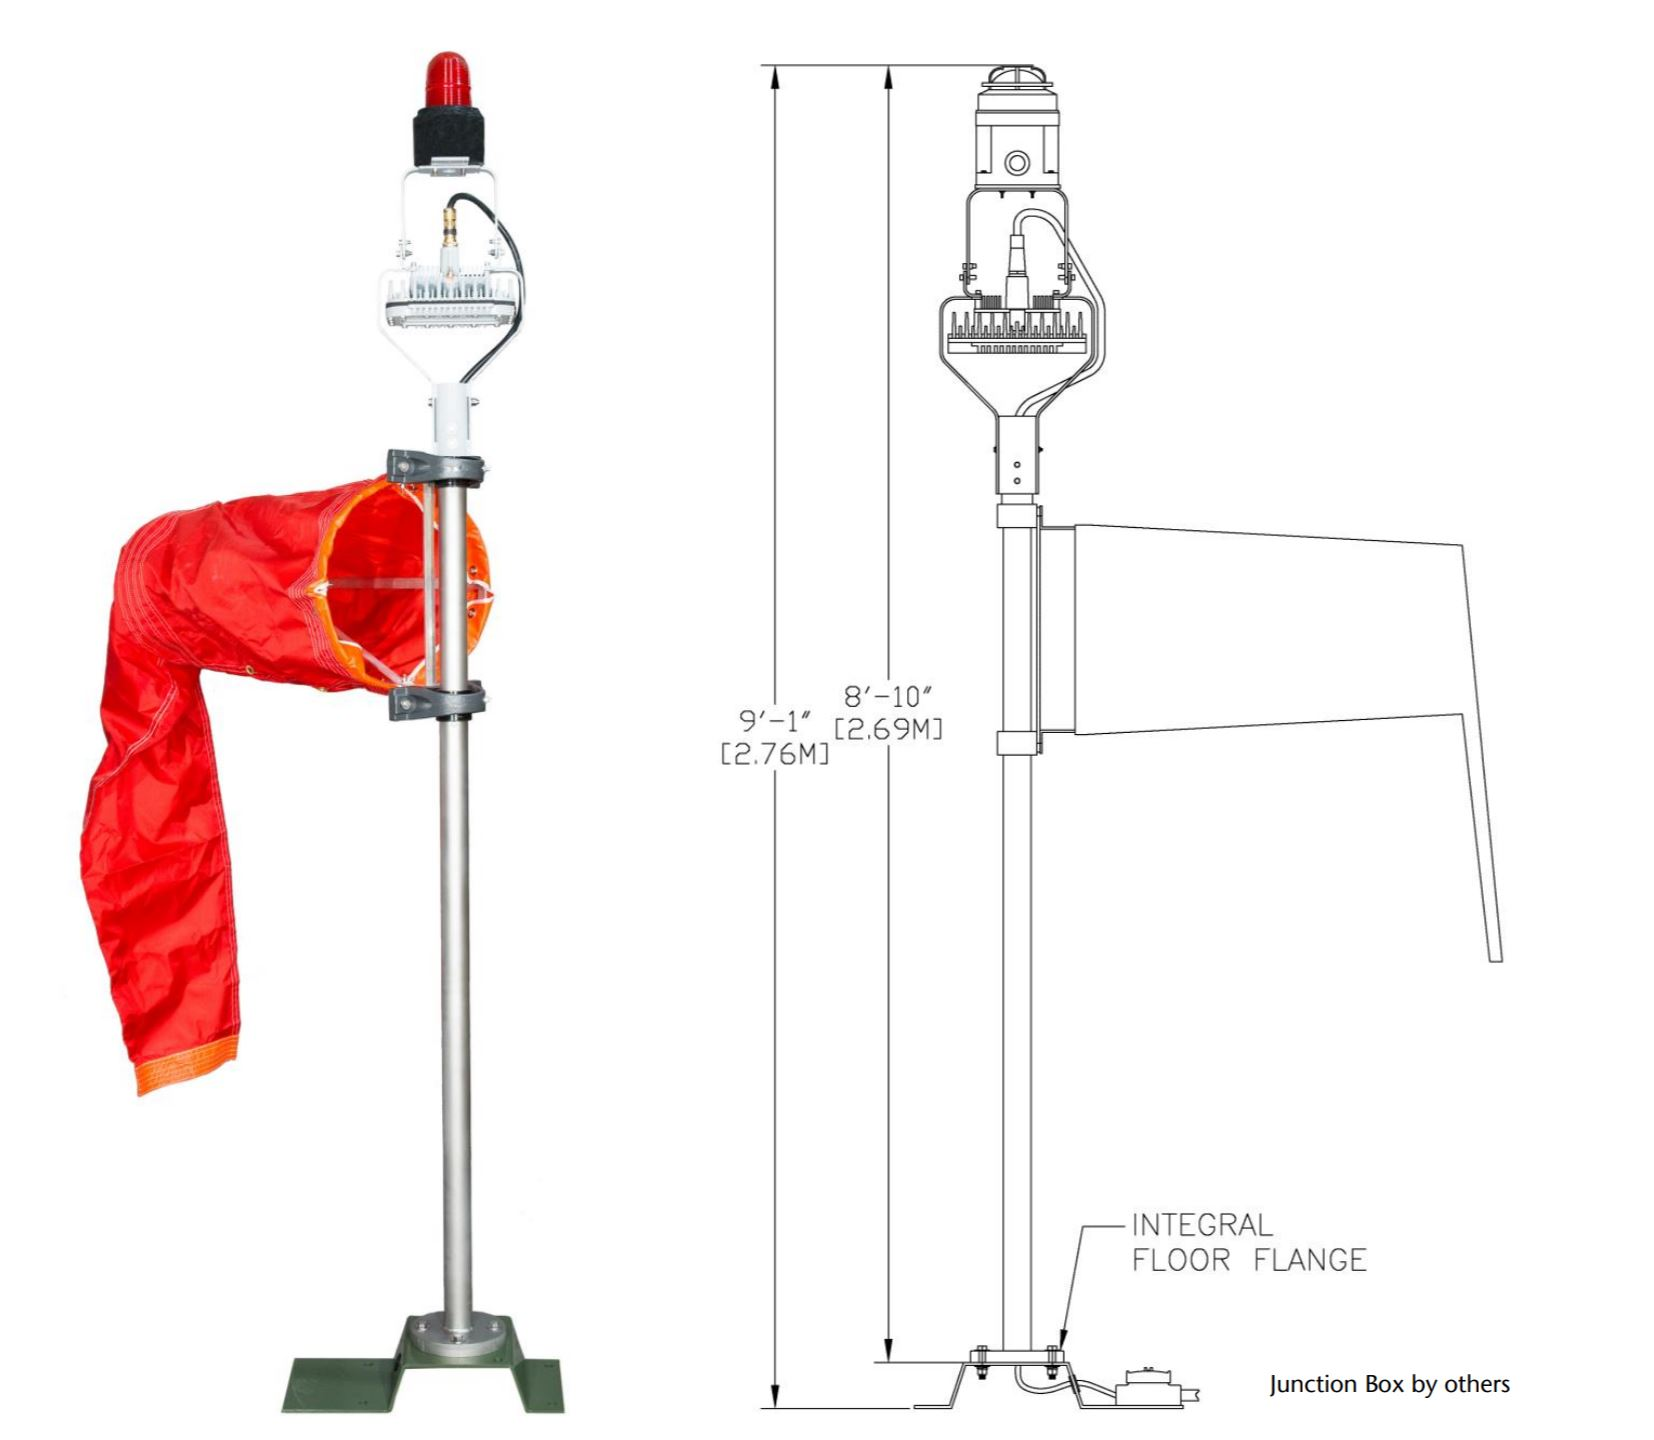 Solar Portable Wind Cone, Airport Solar Windsock, L-806 & L-806(L) Wind Cone, FAA Certified Airport Wind Cones, Internally LED lighted wind cone, Wind Cone L-806 & L-806(L) Wind Cone, FAA Certified Airport Wind Cones, L-806 Wind Cone provides a visual indication of wind direction and velocity, L-807 Wind Cone provides a visual indication of wind direction and velocity, L-806 & L-807 Wind Cone Light Kits. Solar Permanent LED Wind Cone, Solar Series Portable LED Wind Cone. Airport / Heliport Nylon Windsocks